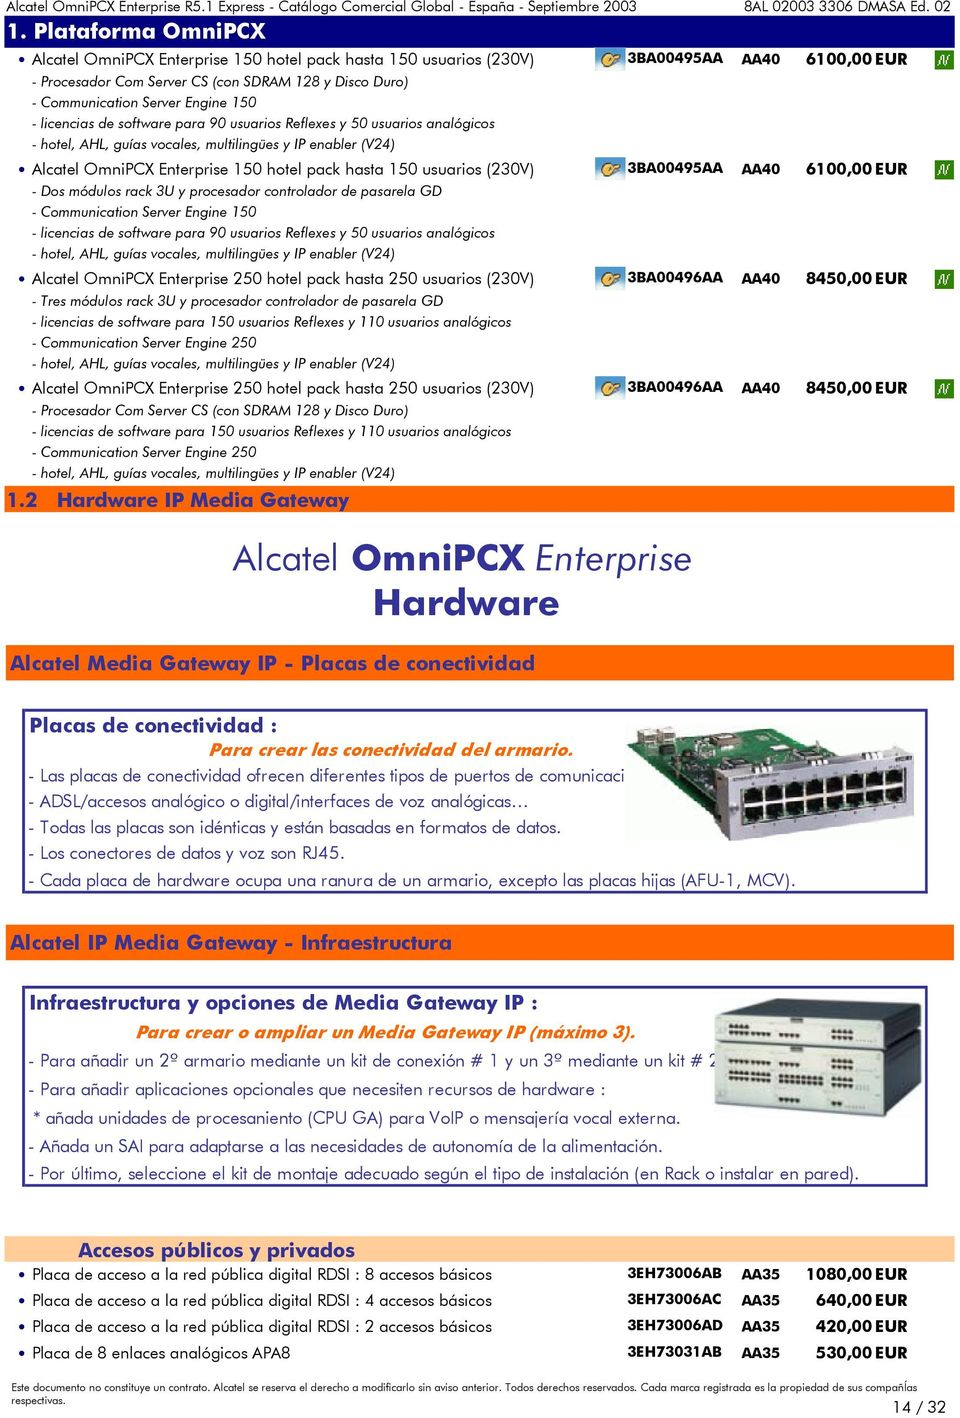 Engine 150 - licencias de software para 90 usuarios Reflexes y 50 usuarios analógicos - hotel, AHL, guías vocales, multilingües y IP enabler (V24) Alcatel OmniPCX Enterprise 150 hotel pack hasta 150